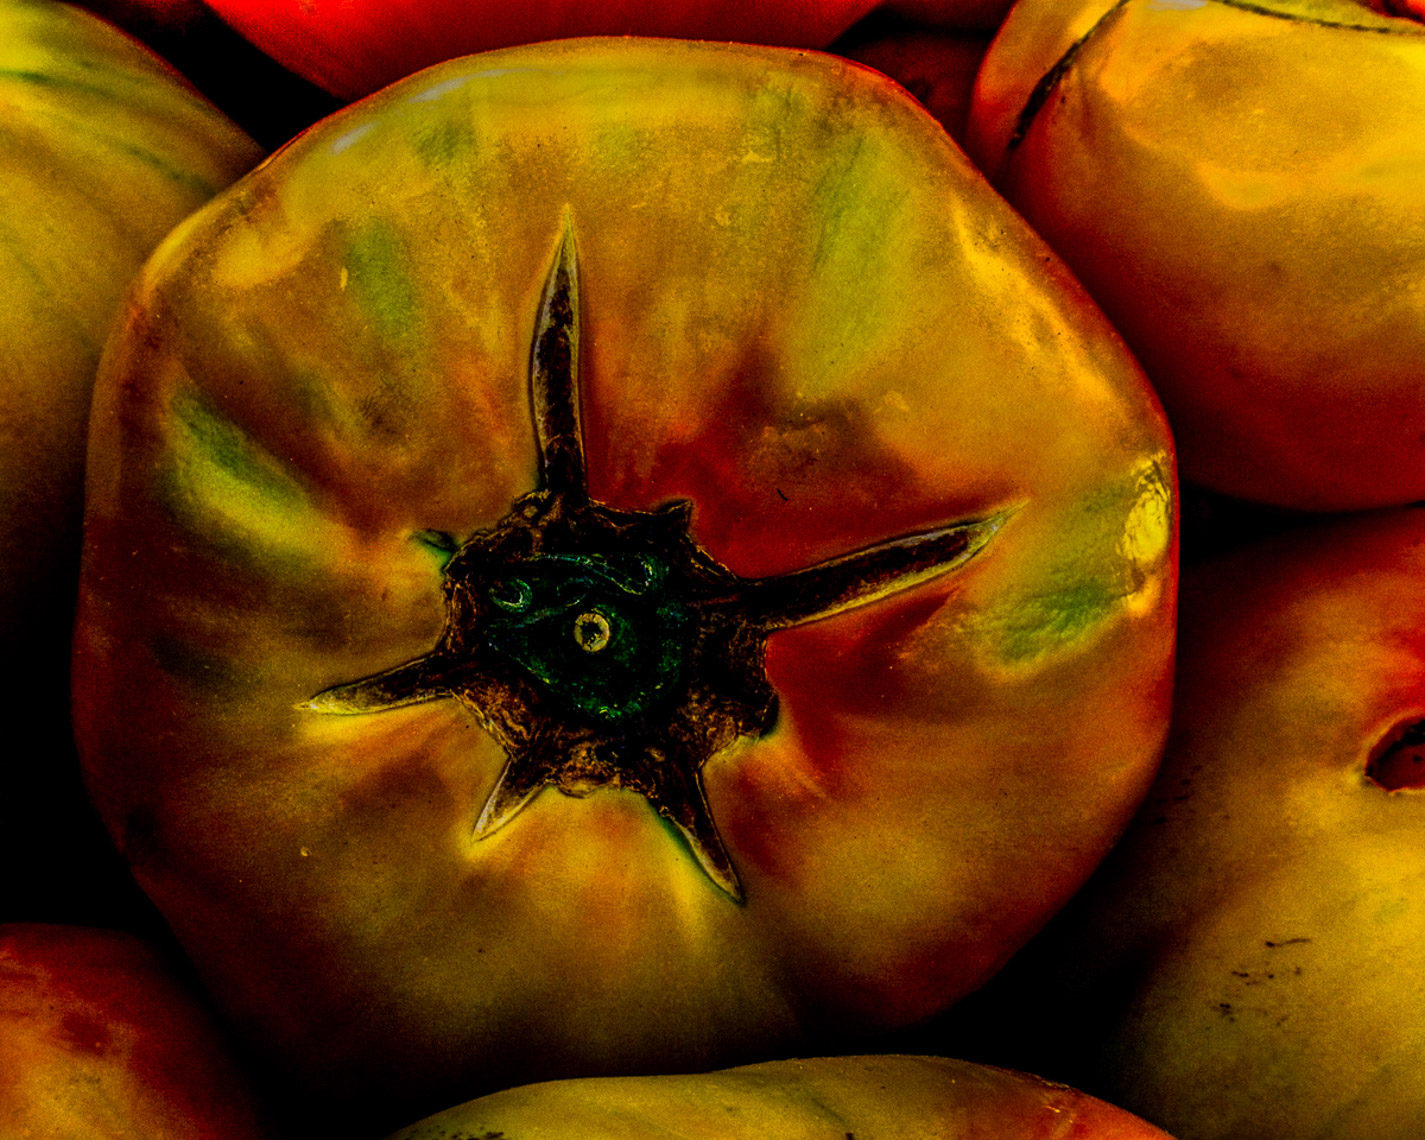 YellowTomatoIMG_5794_03-Produce